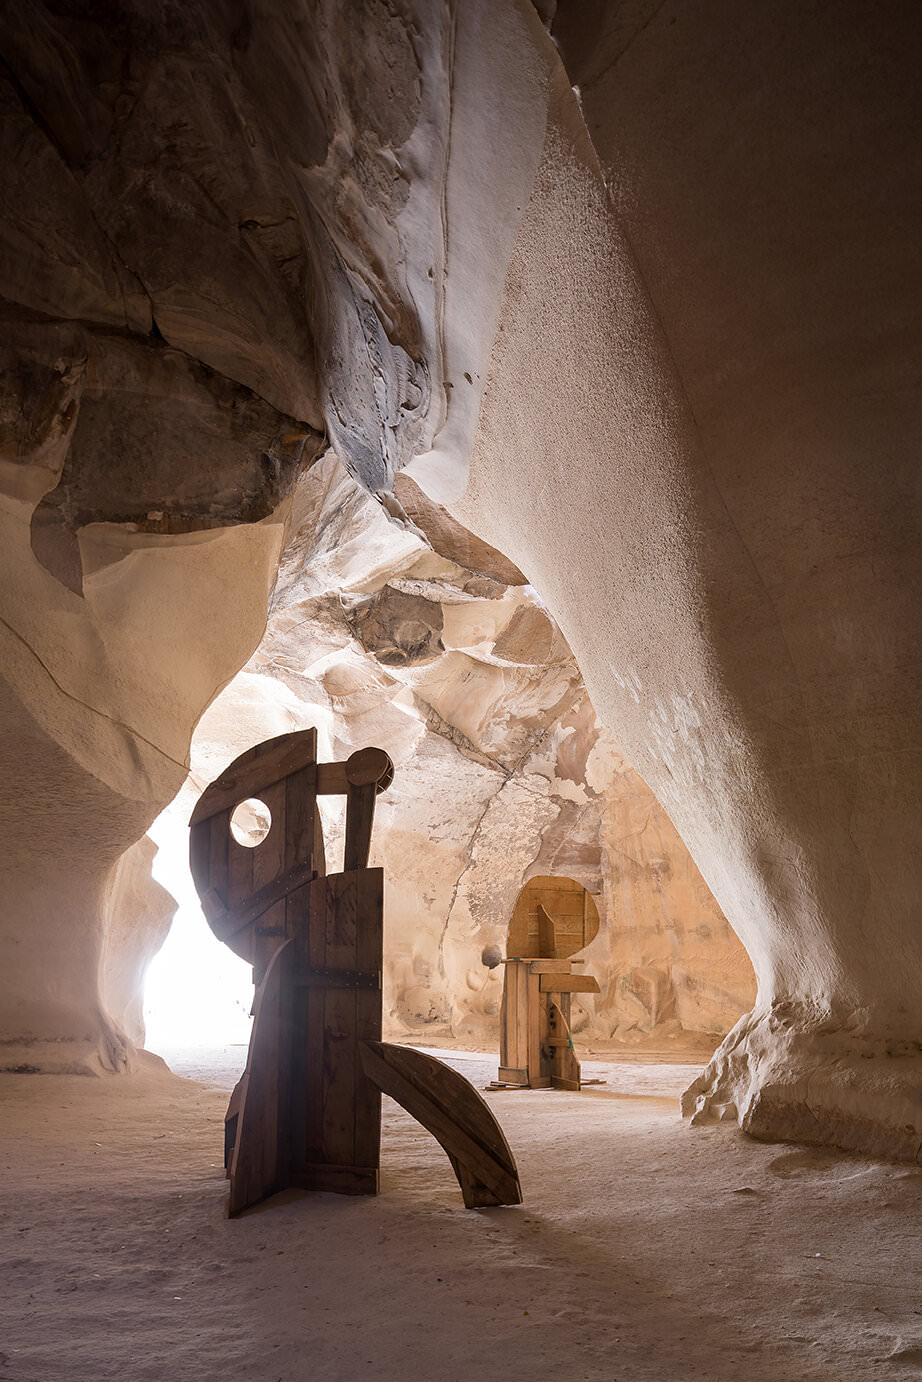 Ivo Bisignano's Solo Exhibition 'Human Forms' set in an Ancient Israel Cave.